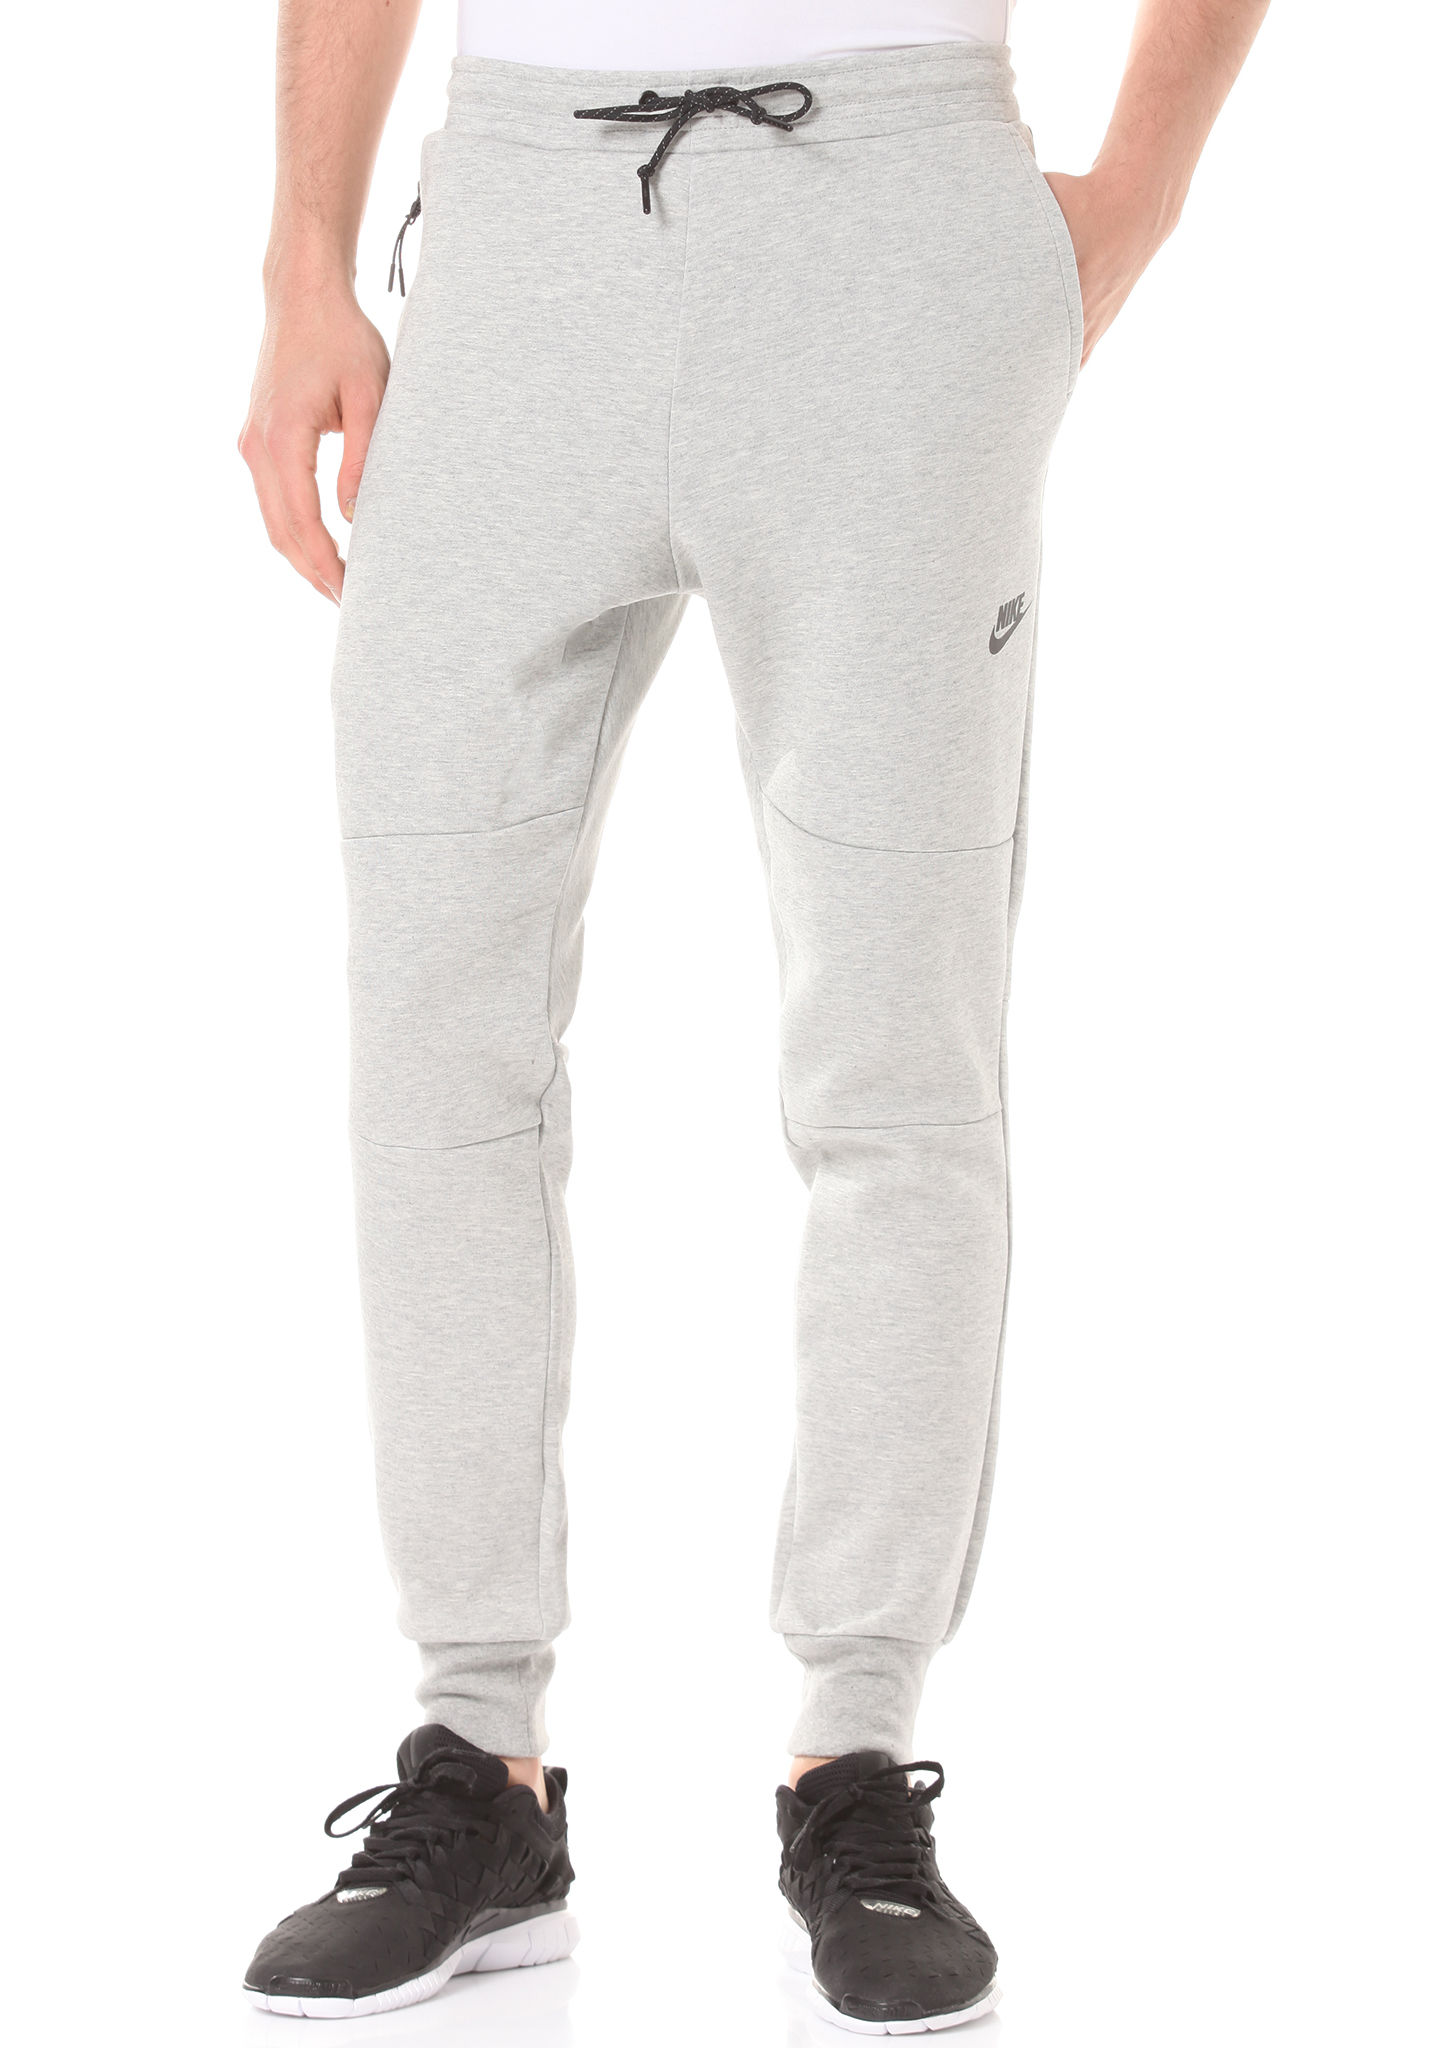 a3f50174343b35 nike sportswear tech fleece – trainingshose für herren – grau. Download  Image 1430 X 2048